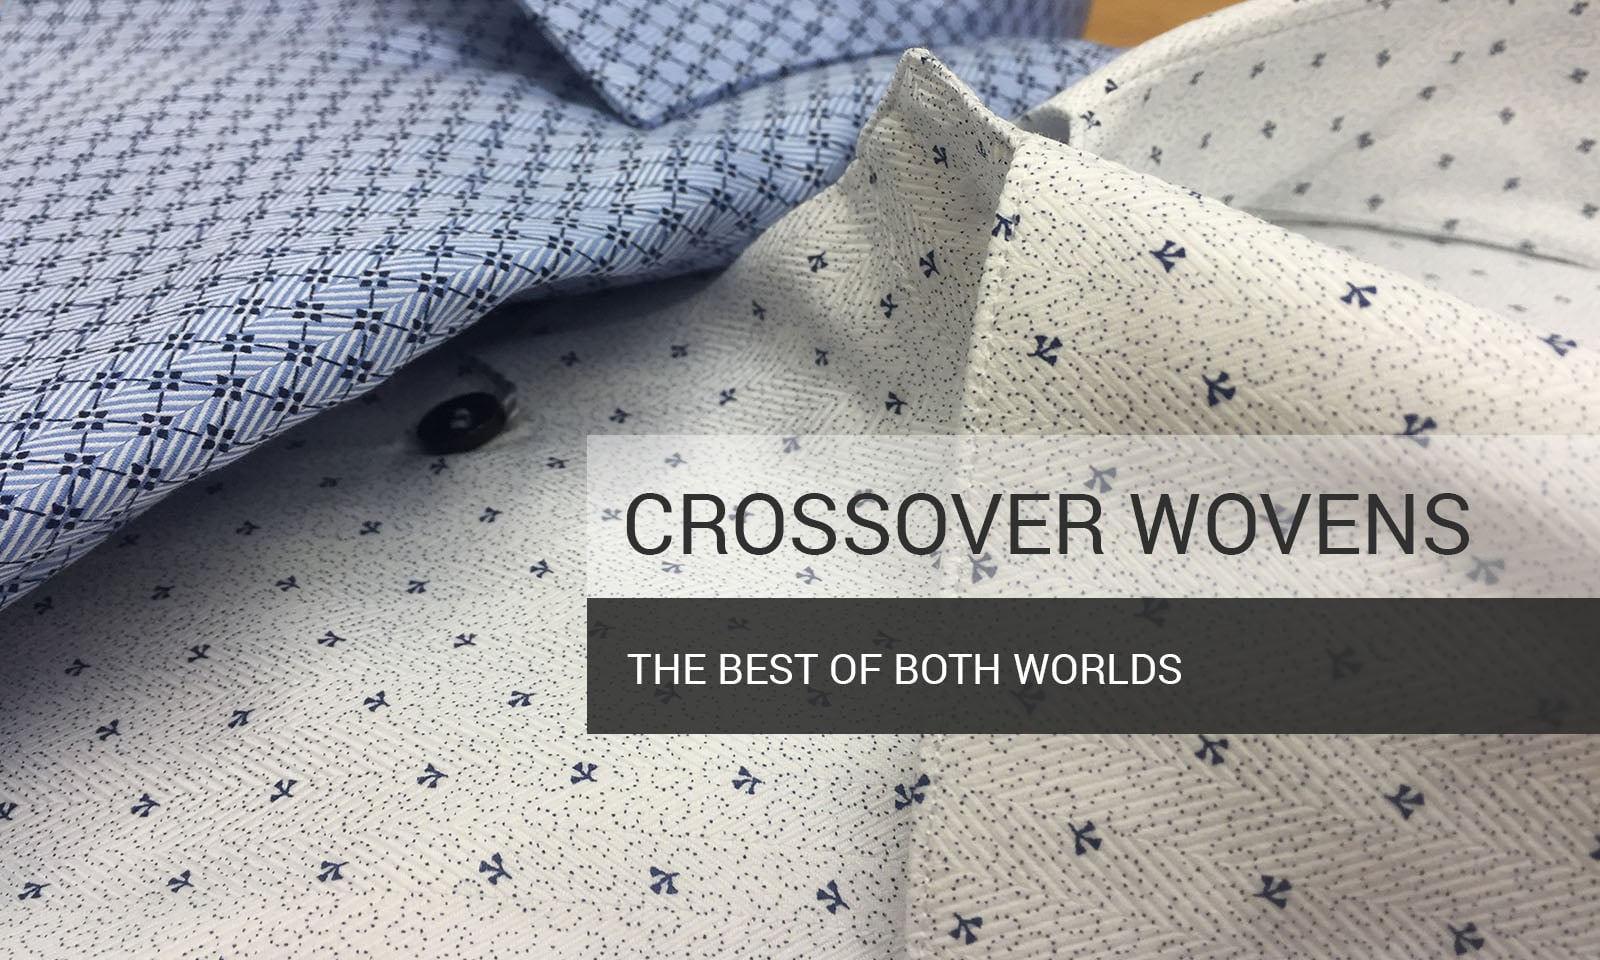 Crossover Wovens - The Best of Both Worlds